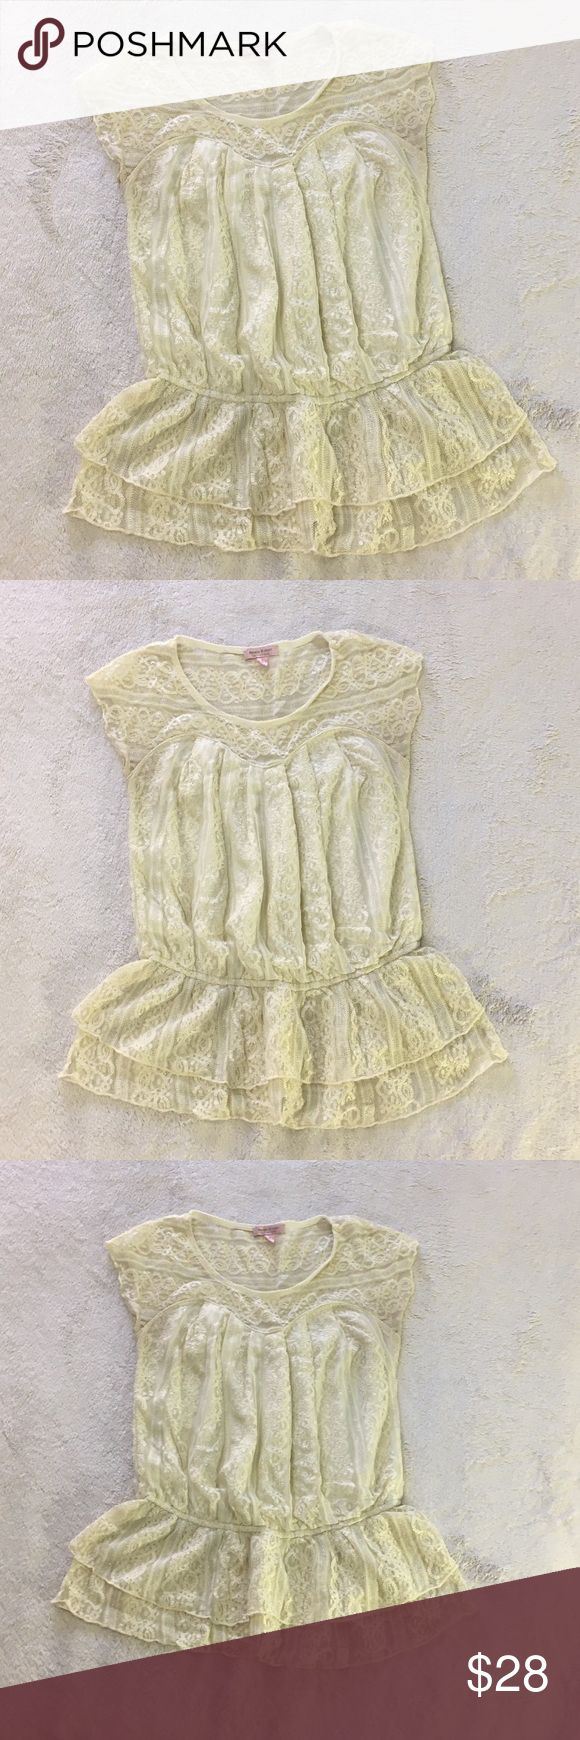 Romeo & Juliet Couture small women's top Lace like with see through at top. Elastic and ruffles at bottom of the shirt  Off white / cream color. Has some shimmer / sparkle. Romeo & Juliet Couture Tops